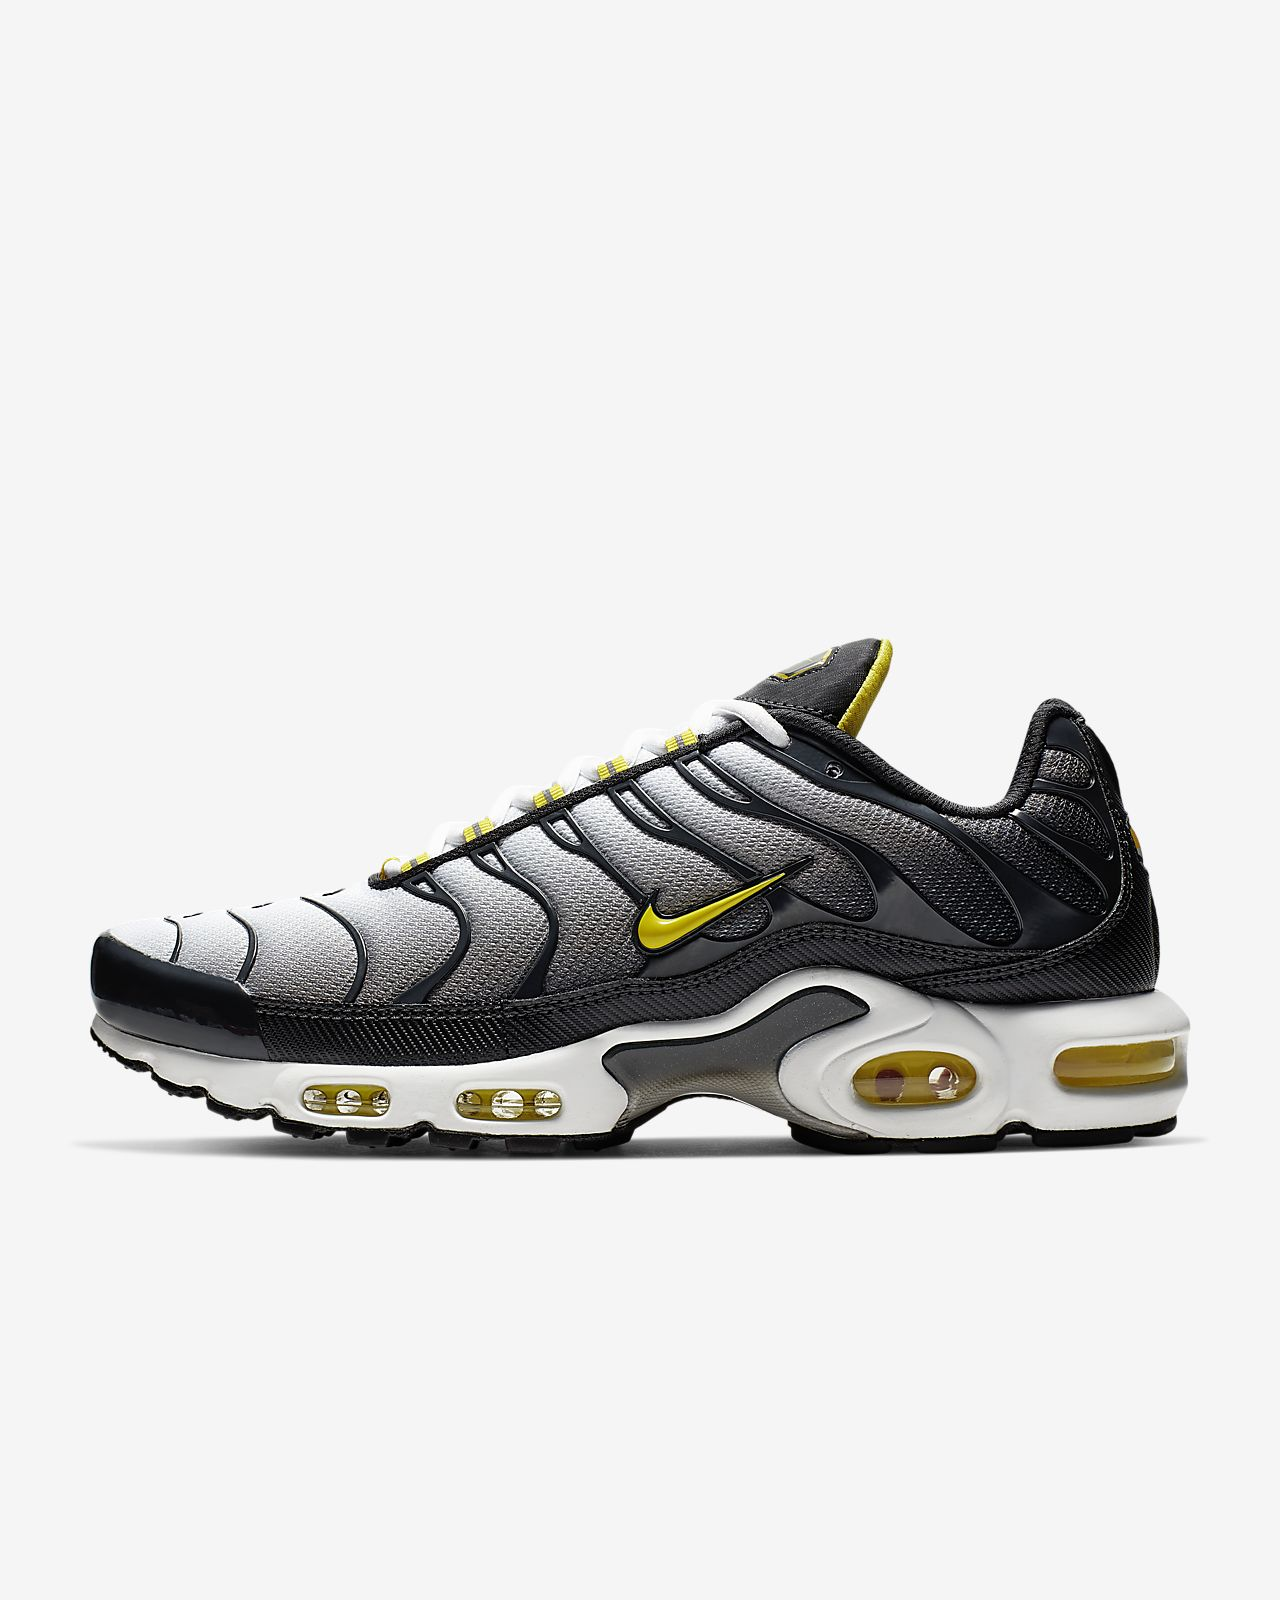 US $69.0 50% OFF|Original Nike Air Max Plus Tn Ultra Men's Running Shoes, Wear resistant Shock absorbing Breathable Non slip 815994 100 in Running